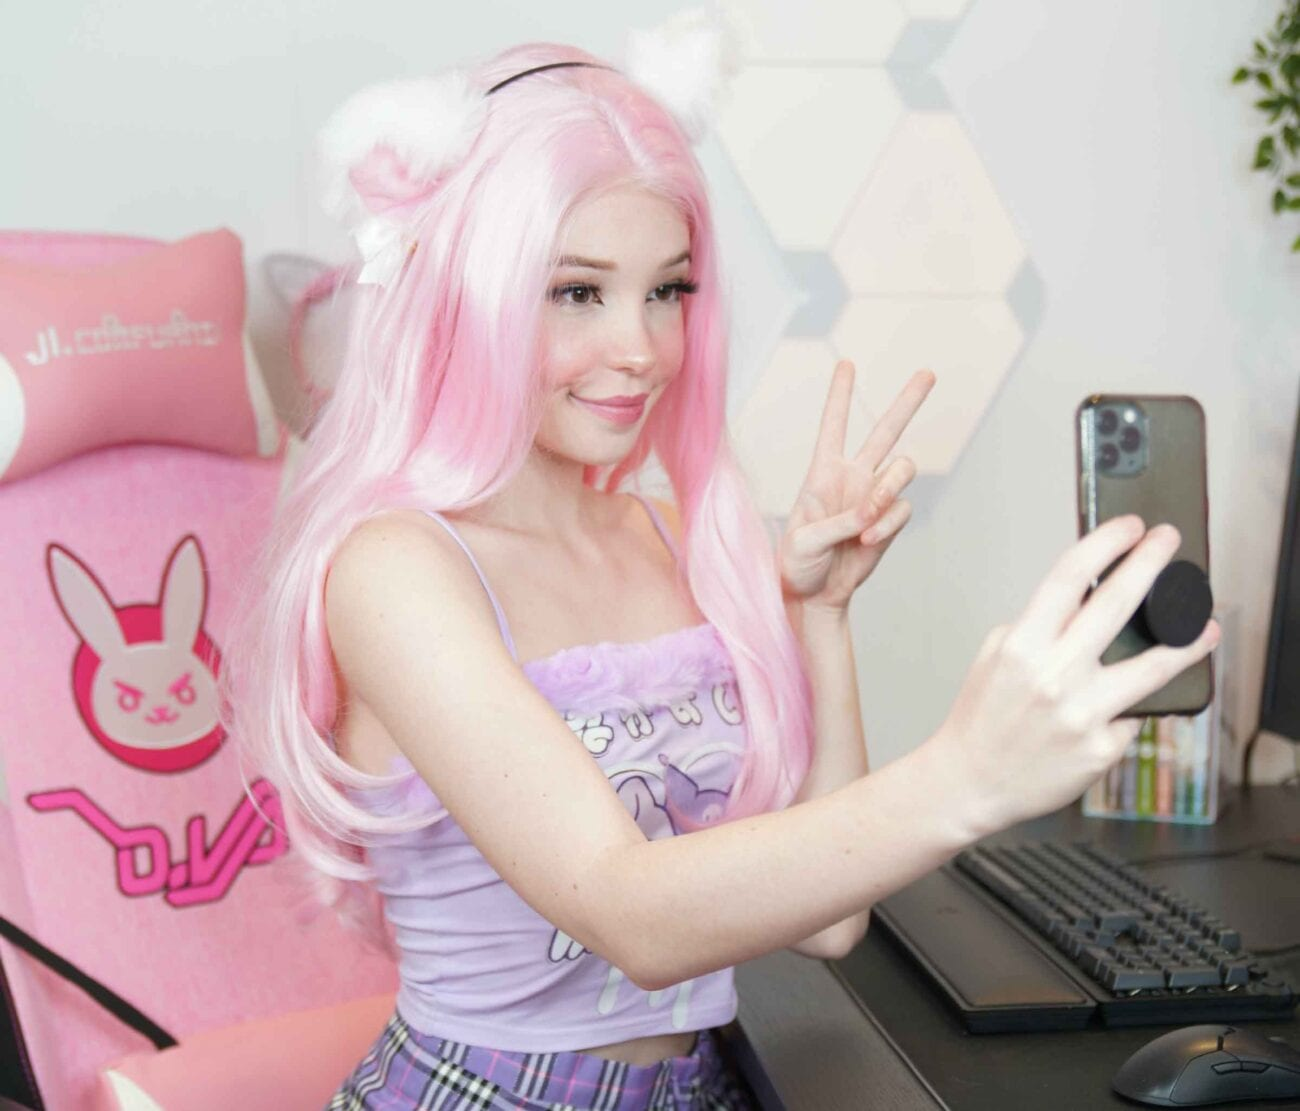 Belle Delphine didn't disappear after her bath water stunt. Now, people are outraged by one of her latest tweets. Here's why.